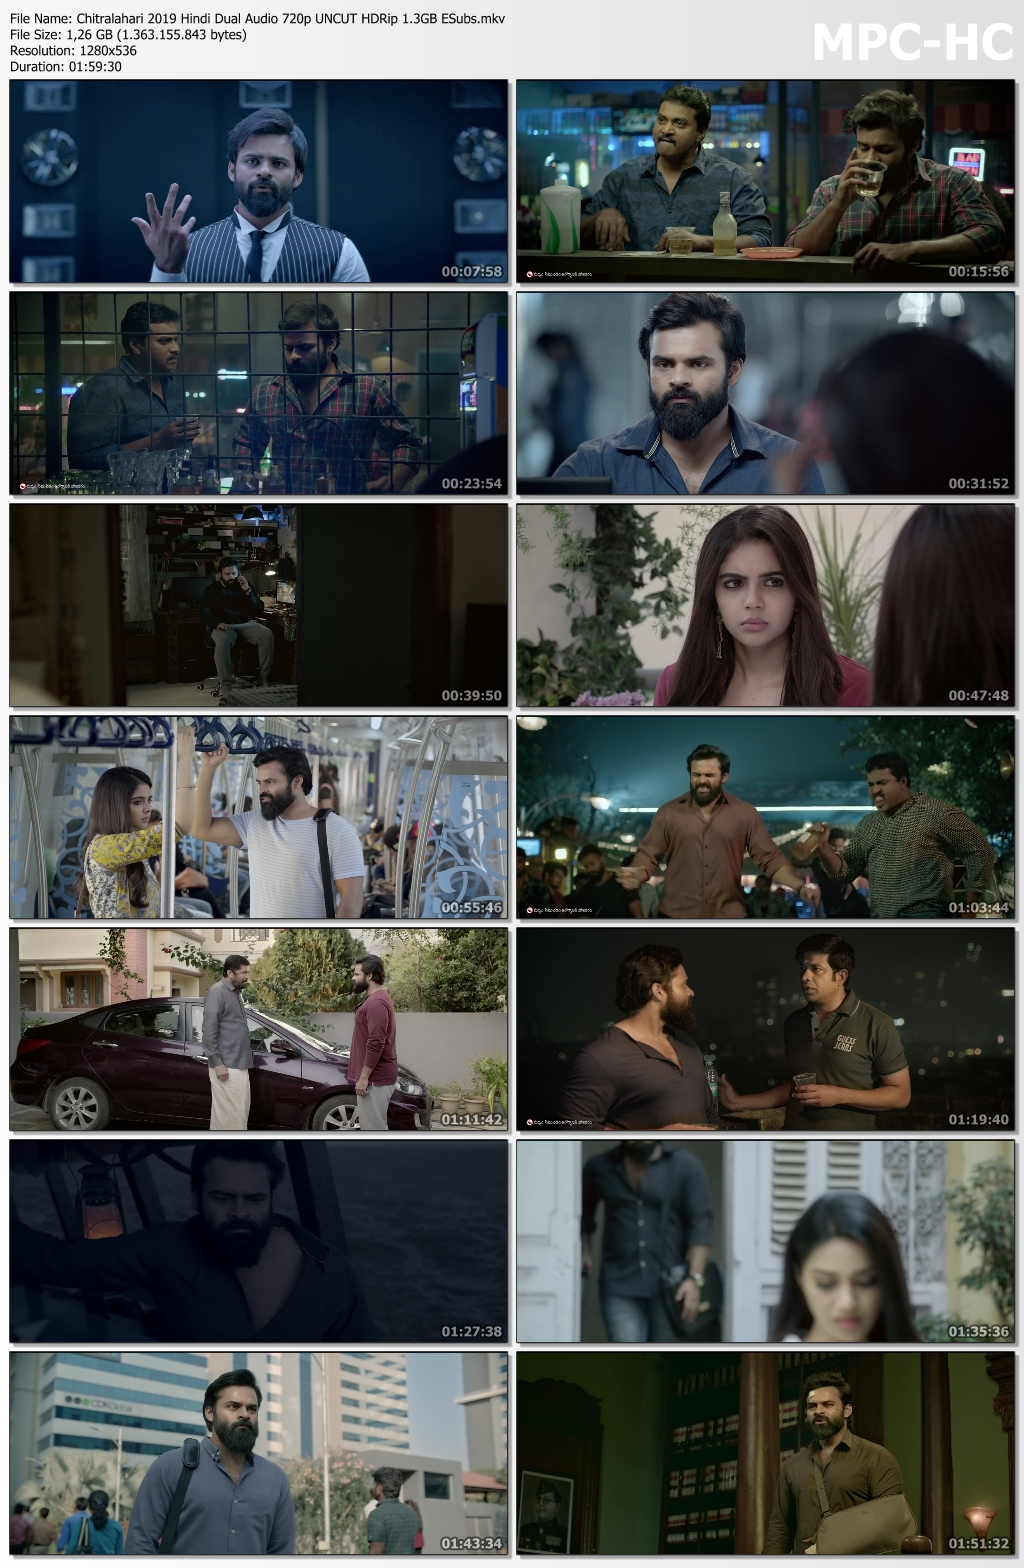 Chitralahari-2019-Hindi-Dual-Audio-720p-UNCUT-HDRip-1-3-GB-ESubs-mkv-thumbs